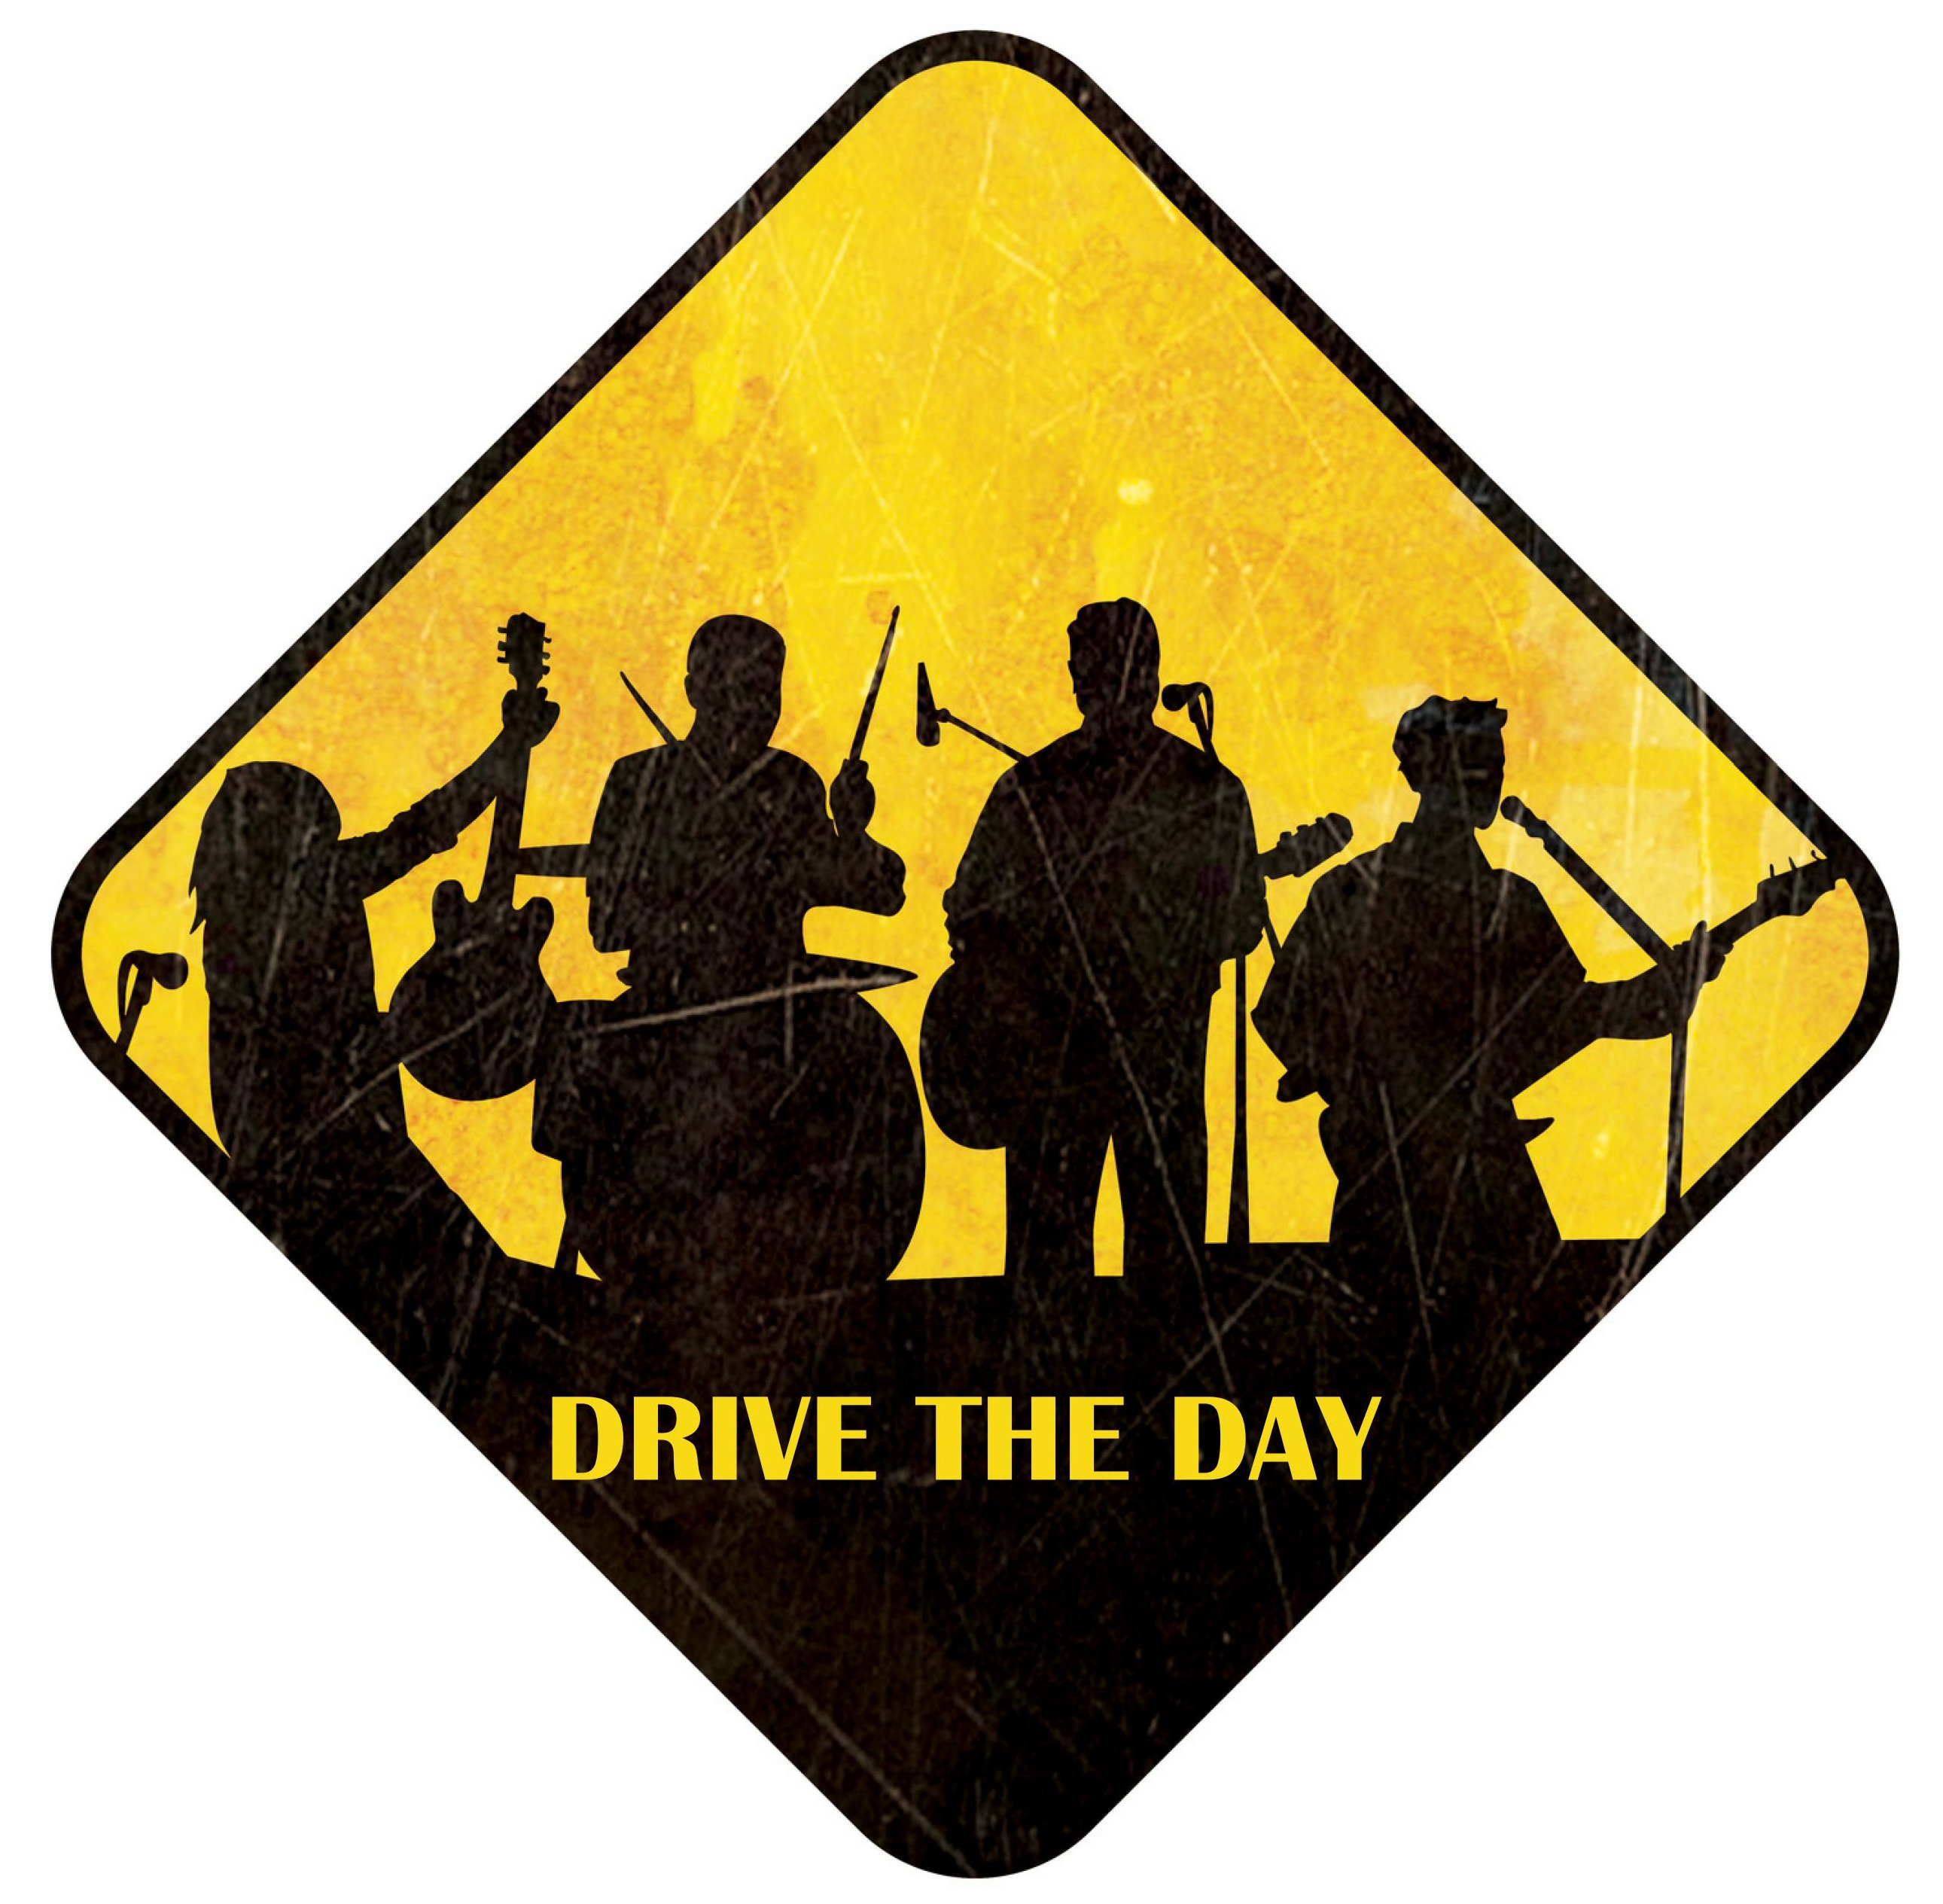 Drive the Day - default icon